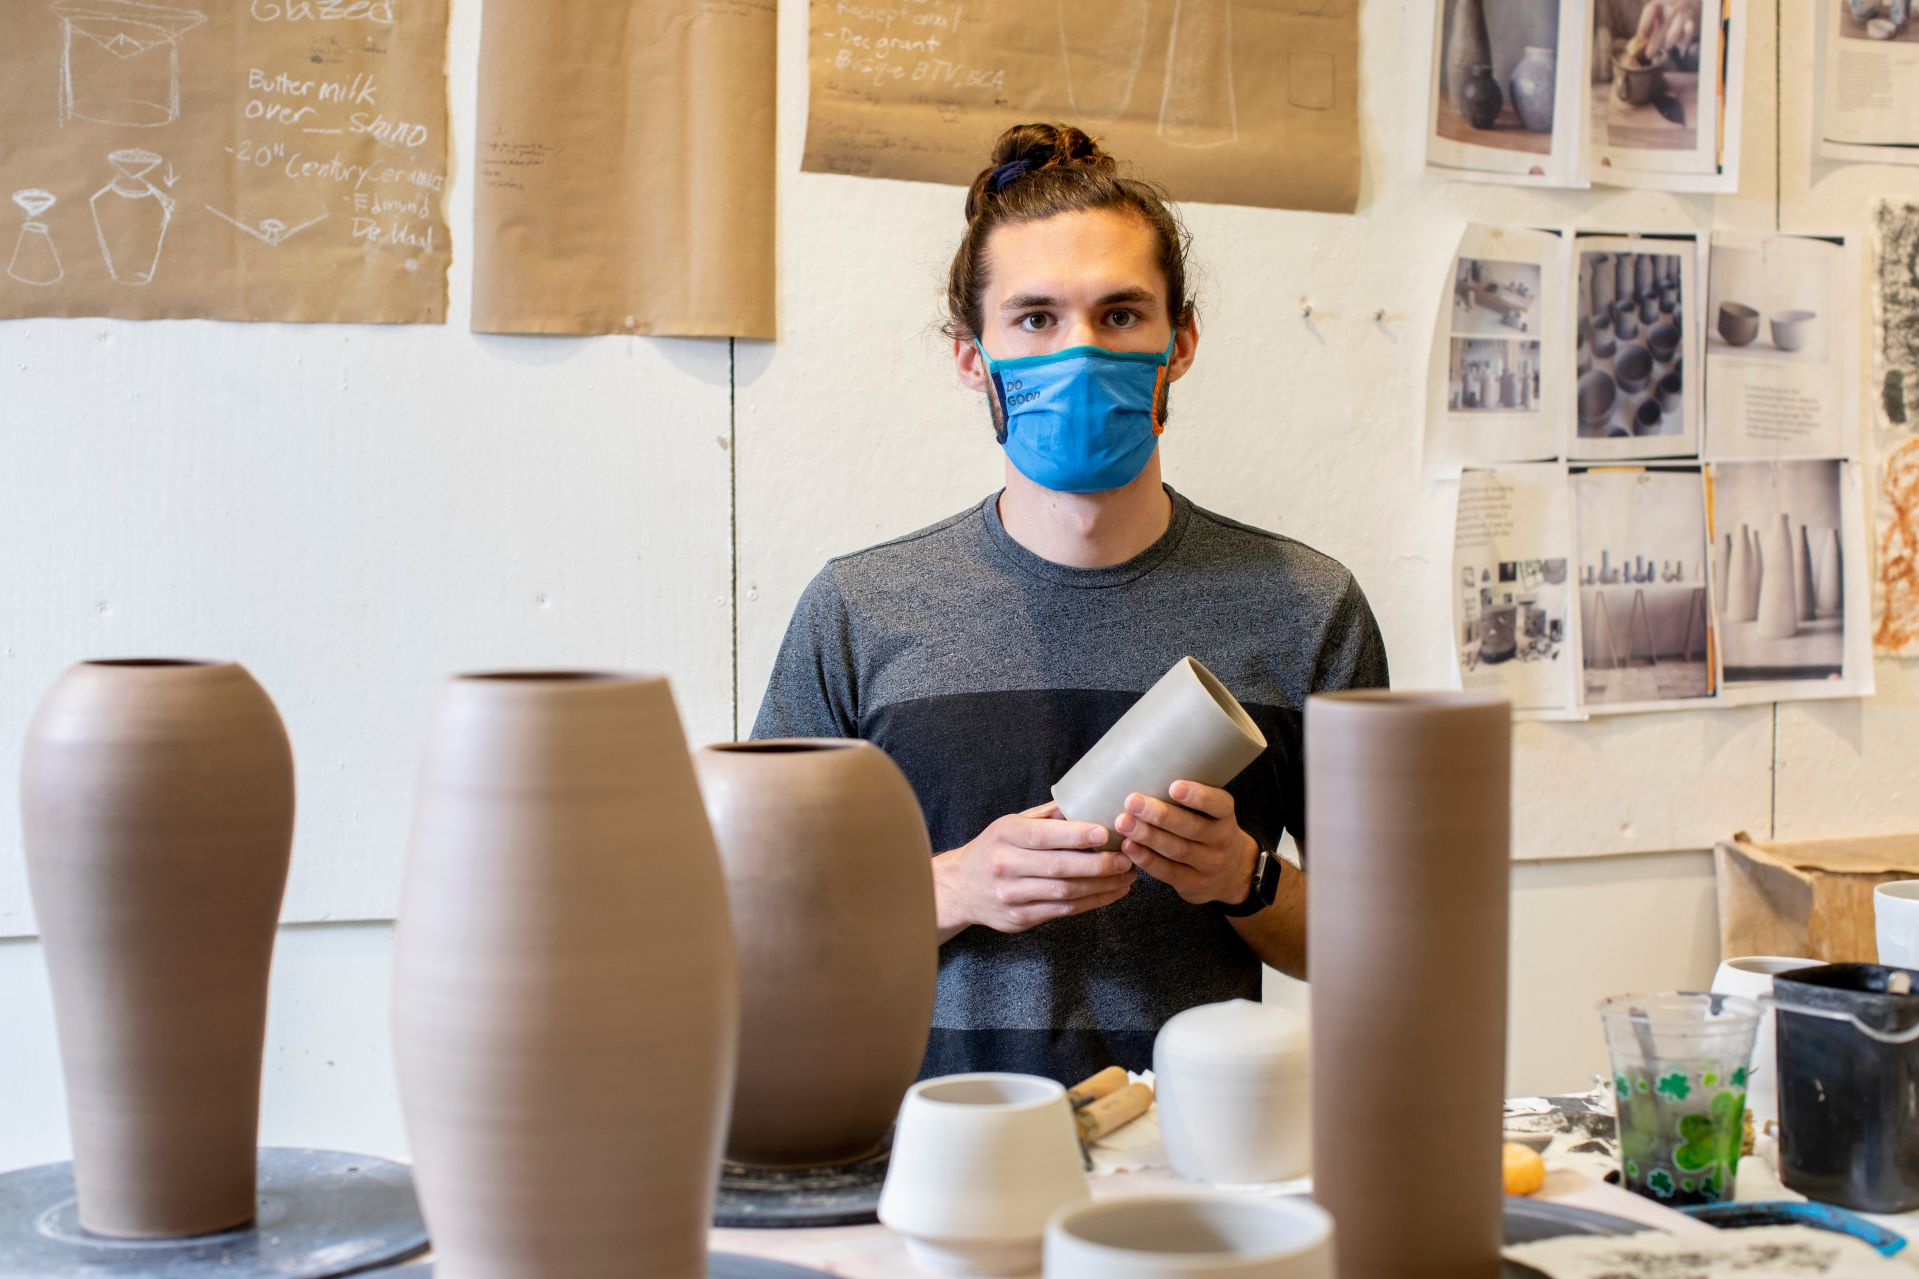 Christopher Barker '21 of Burlington, Vt., poses and works in his Olin Arts Studio Room 132. His ceramics will be on display in the annual senior exhibition in the Bates Museum of Art.